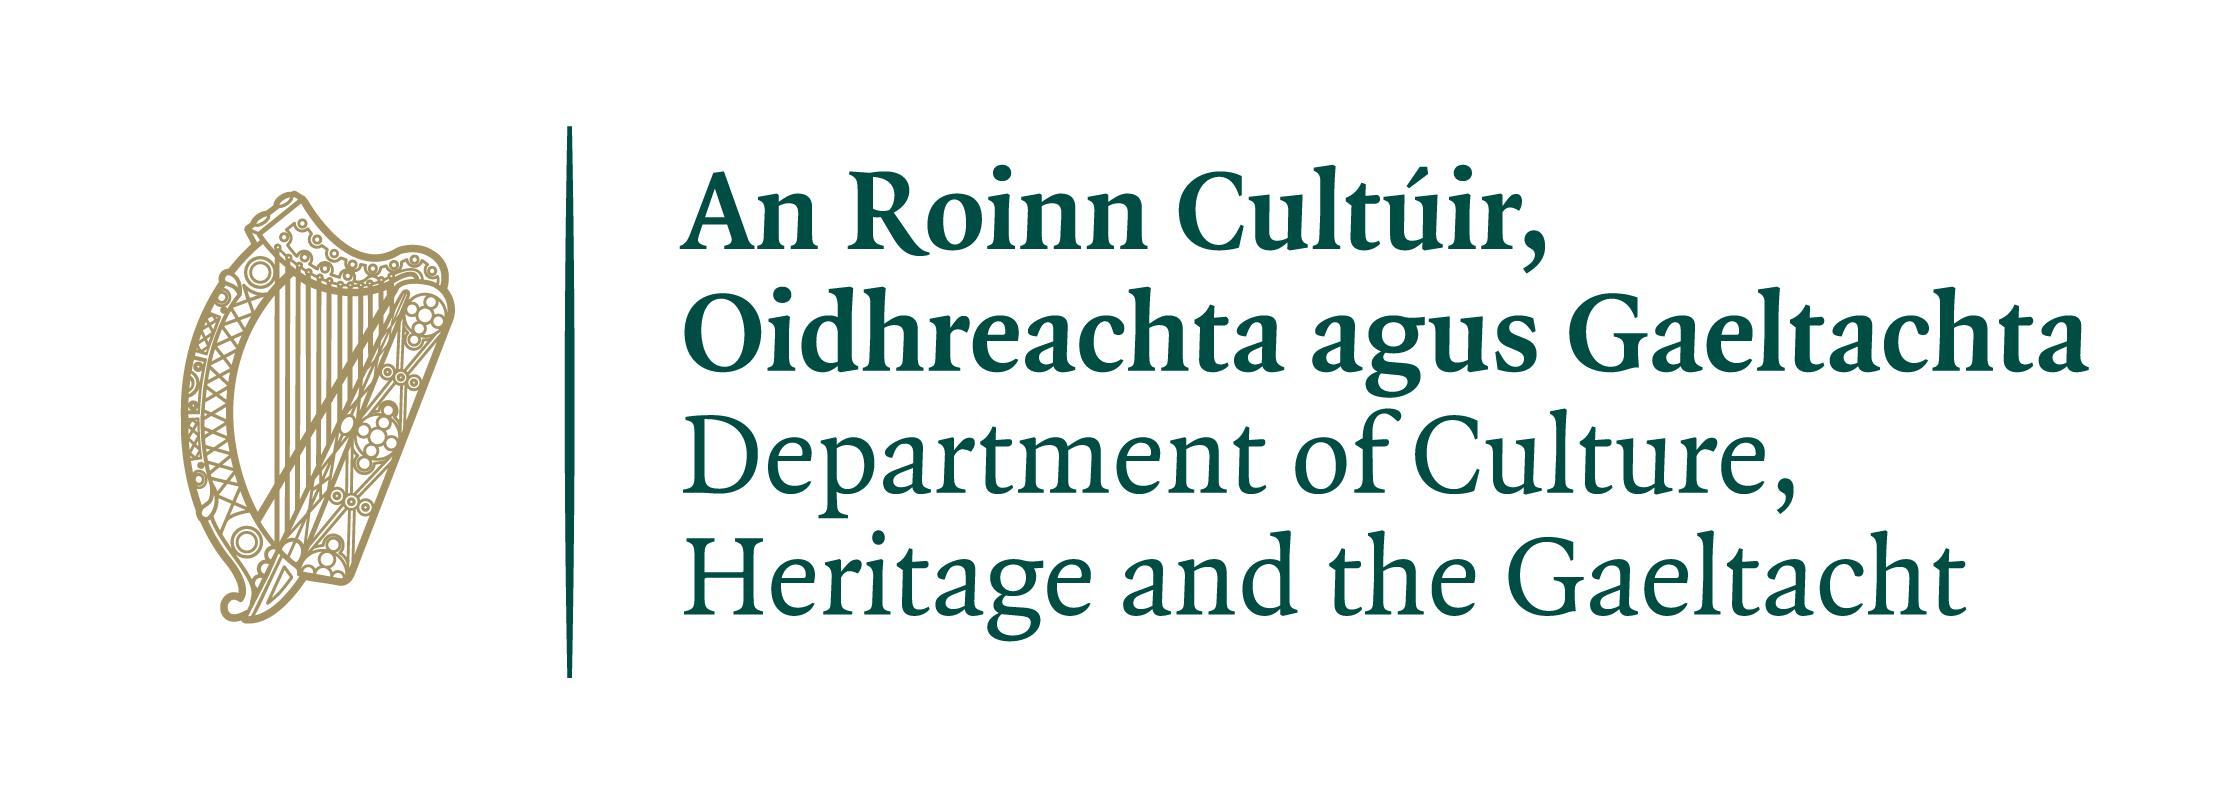 2018-06-01 Department of Culture, Heritage & the Gaeltacht logo (Colour)....png